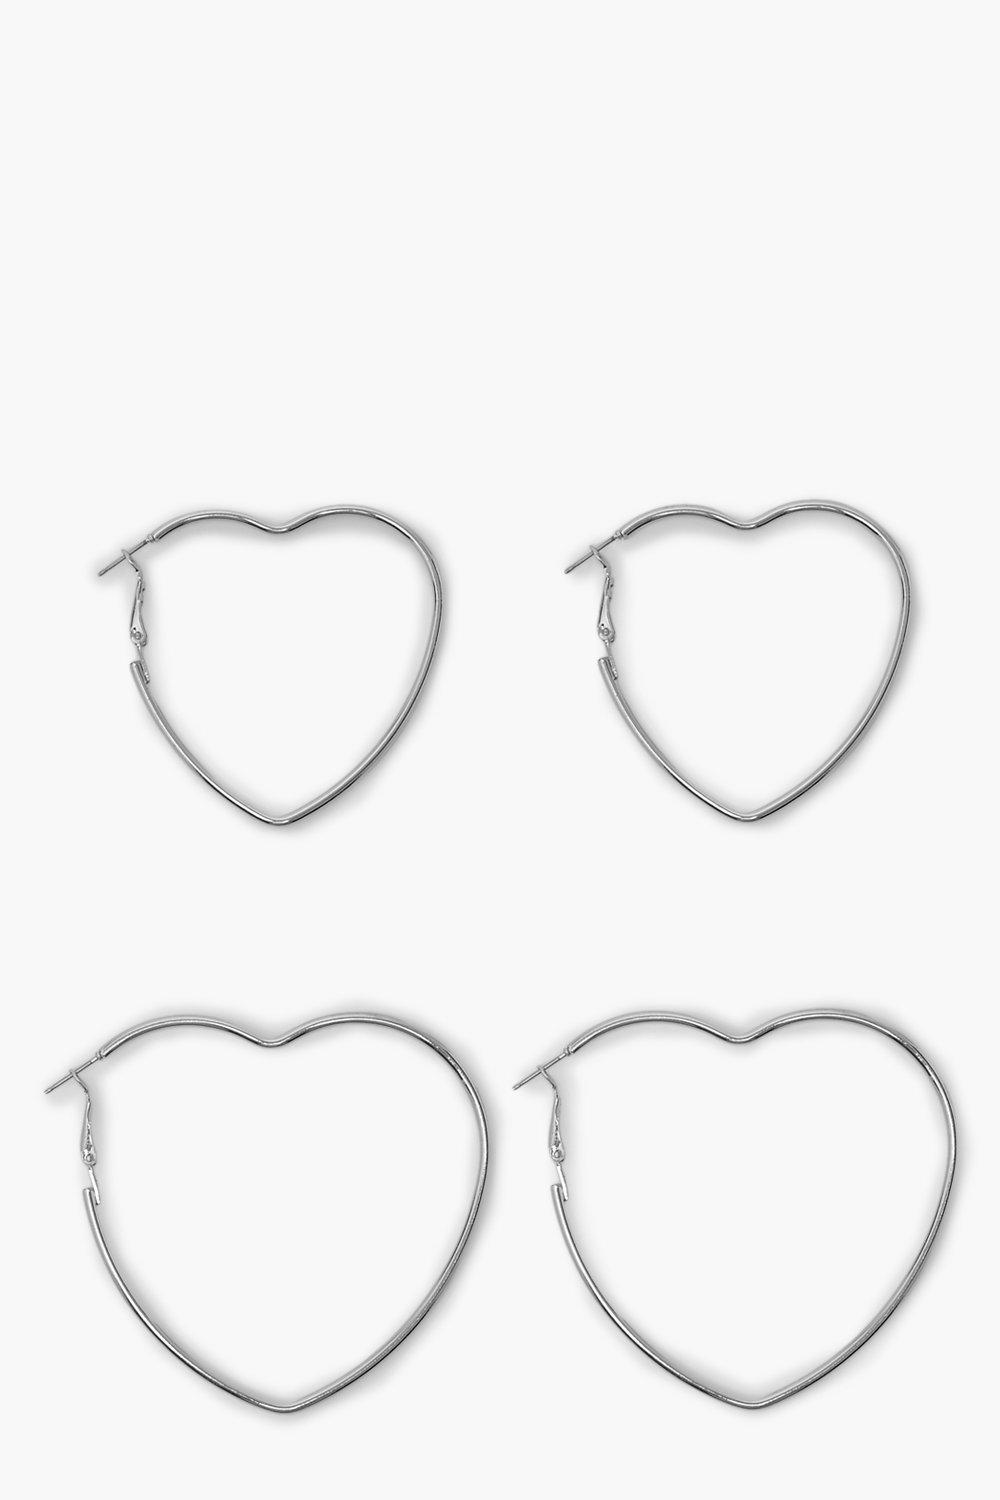 Boohoo 2 Pack Slim Heart Hoop Earrings, Silver